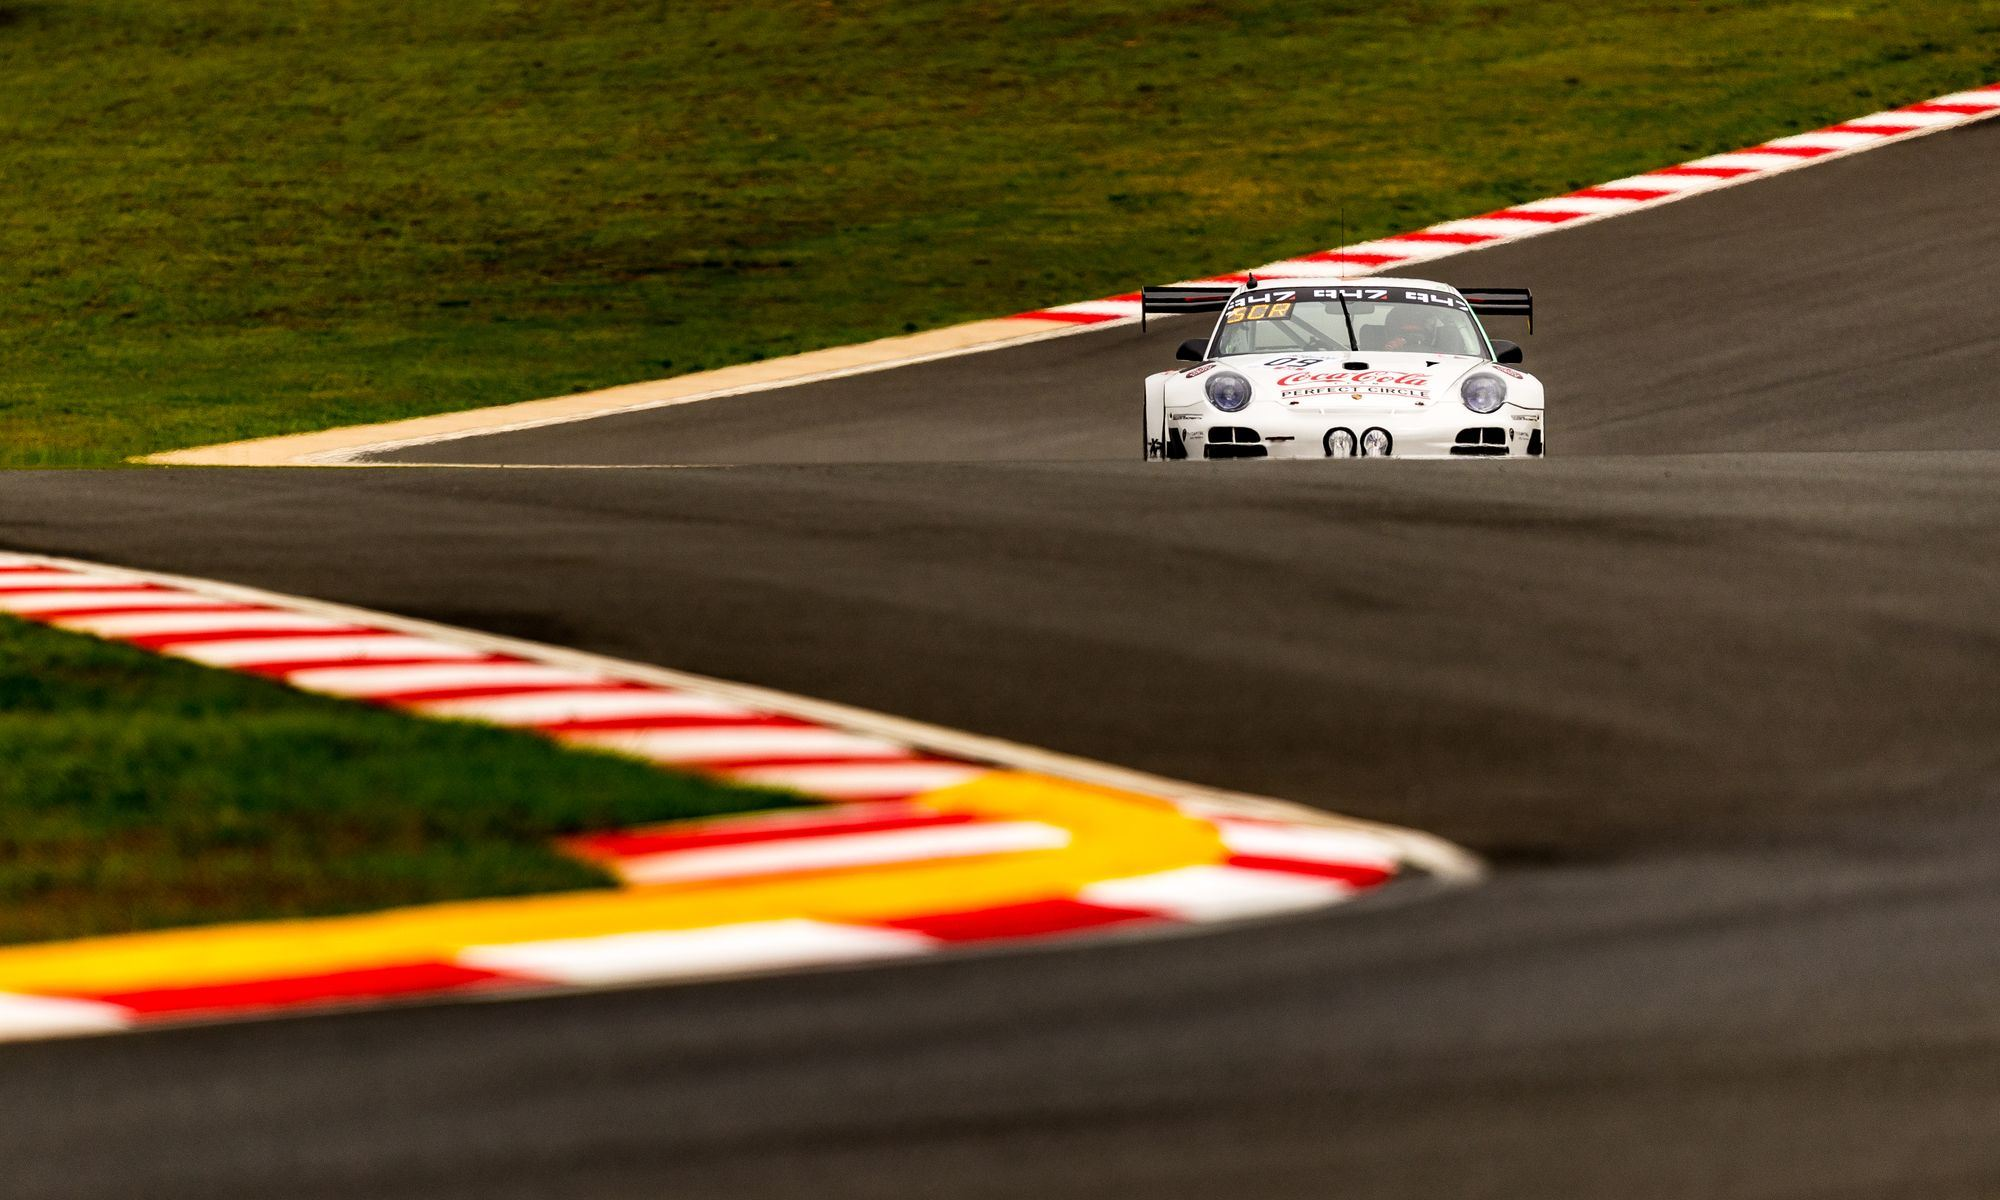 The Team Perfect Circle Porsche negotiates the lowest part of the track (image by David Marchio)